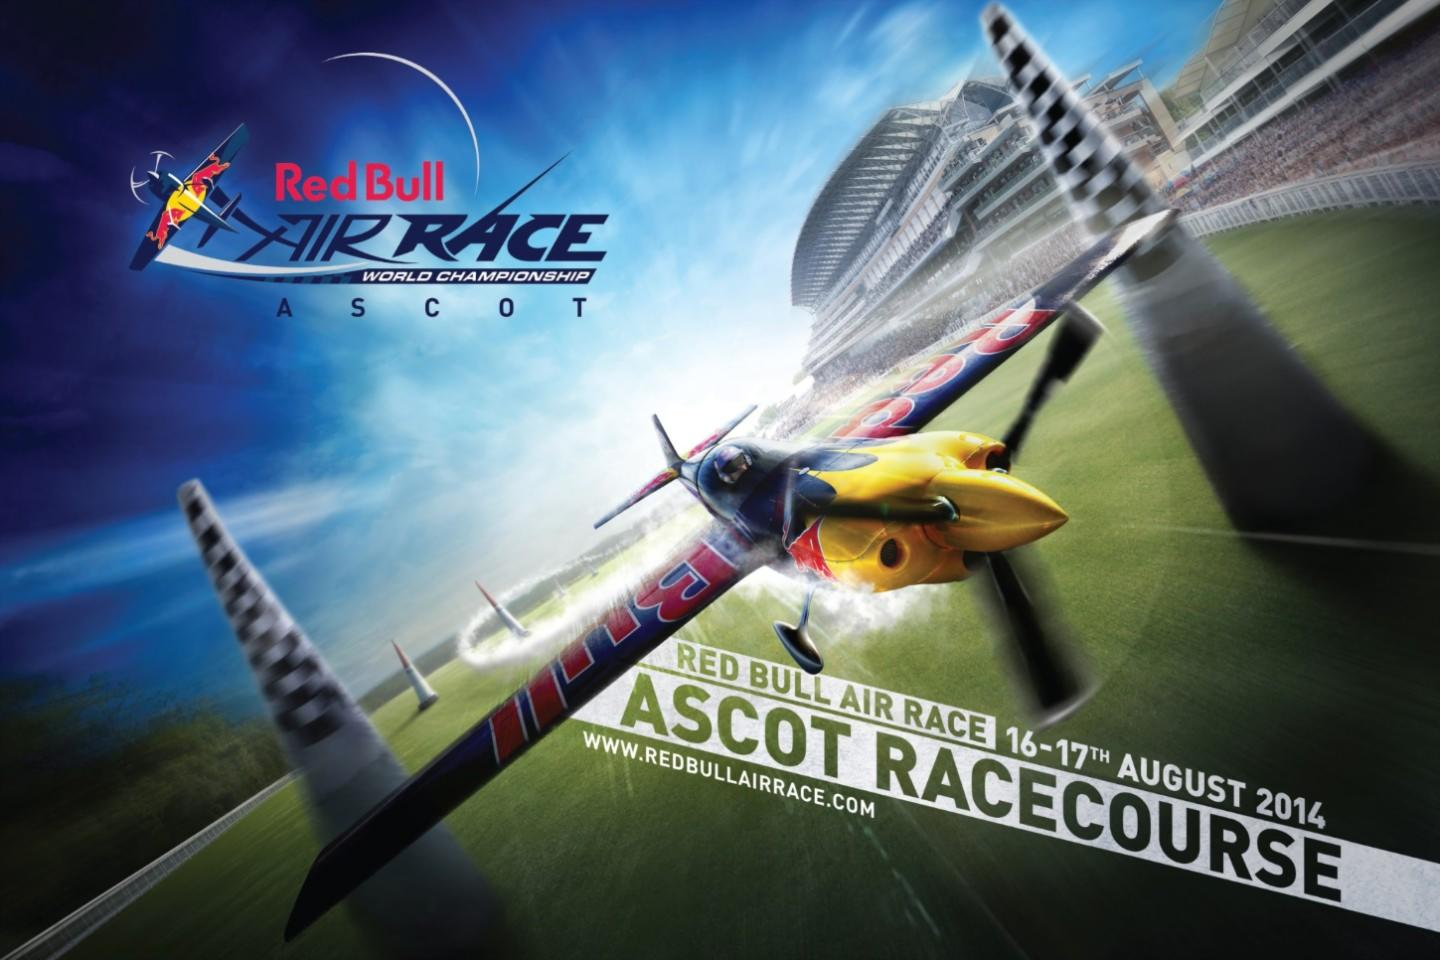 Red Bull Air Race Tickets | Buy or Sell Red Bull Air Race